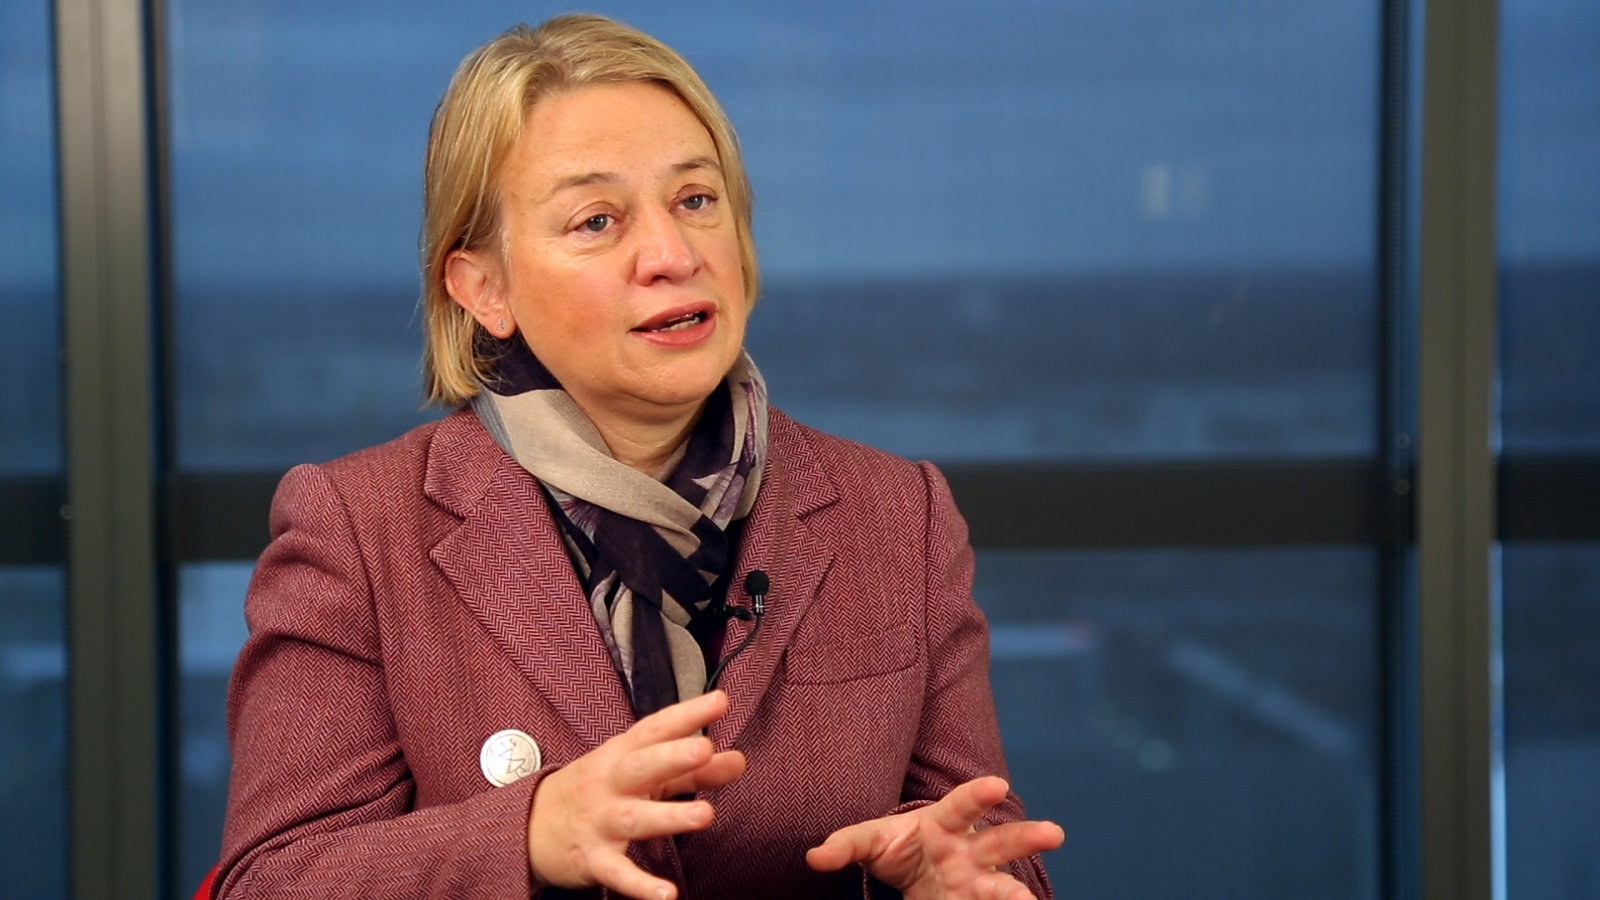 Natalie Bennett: Green Party can break British politics wide open in 2015